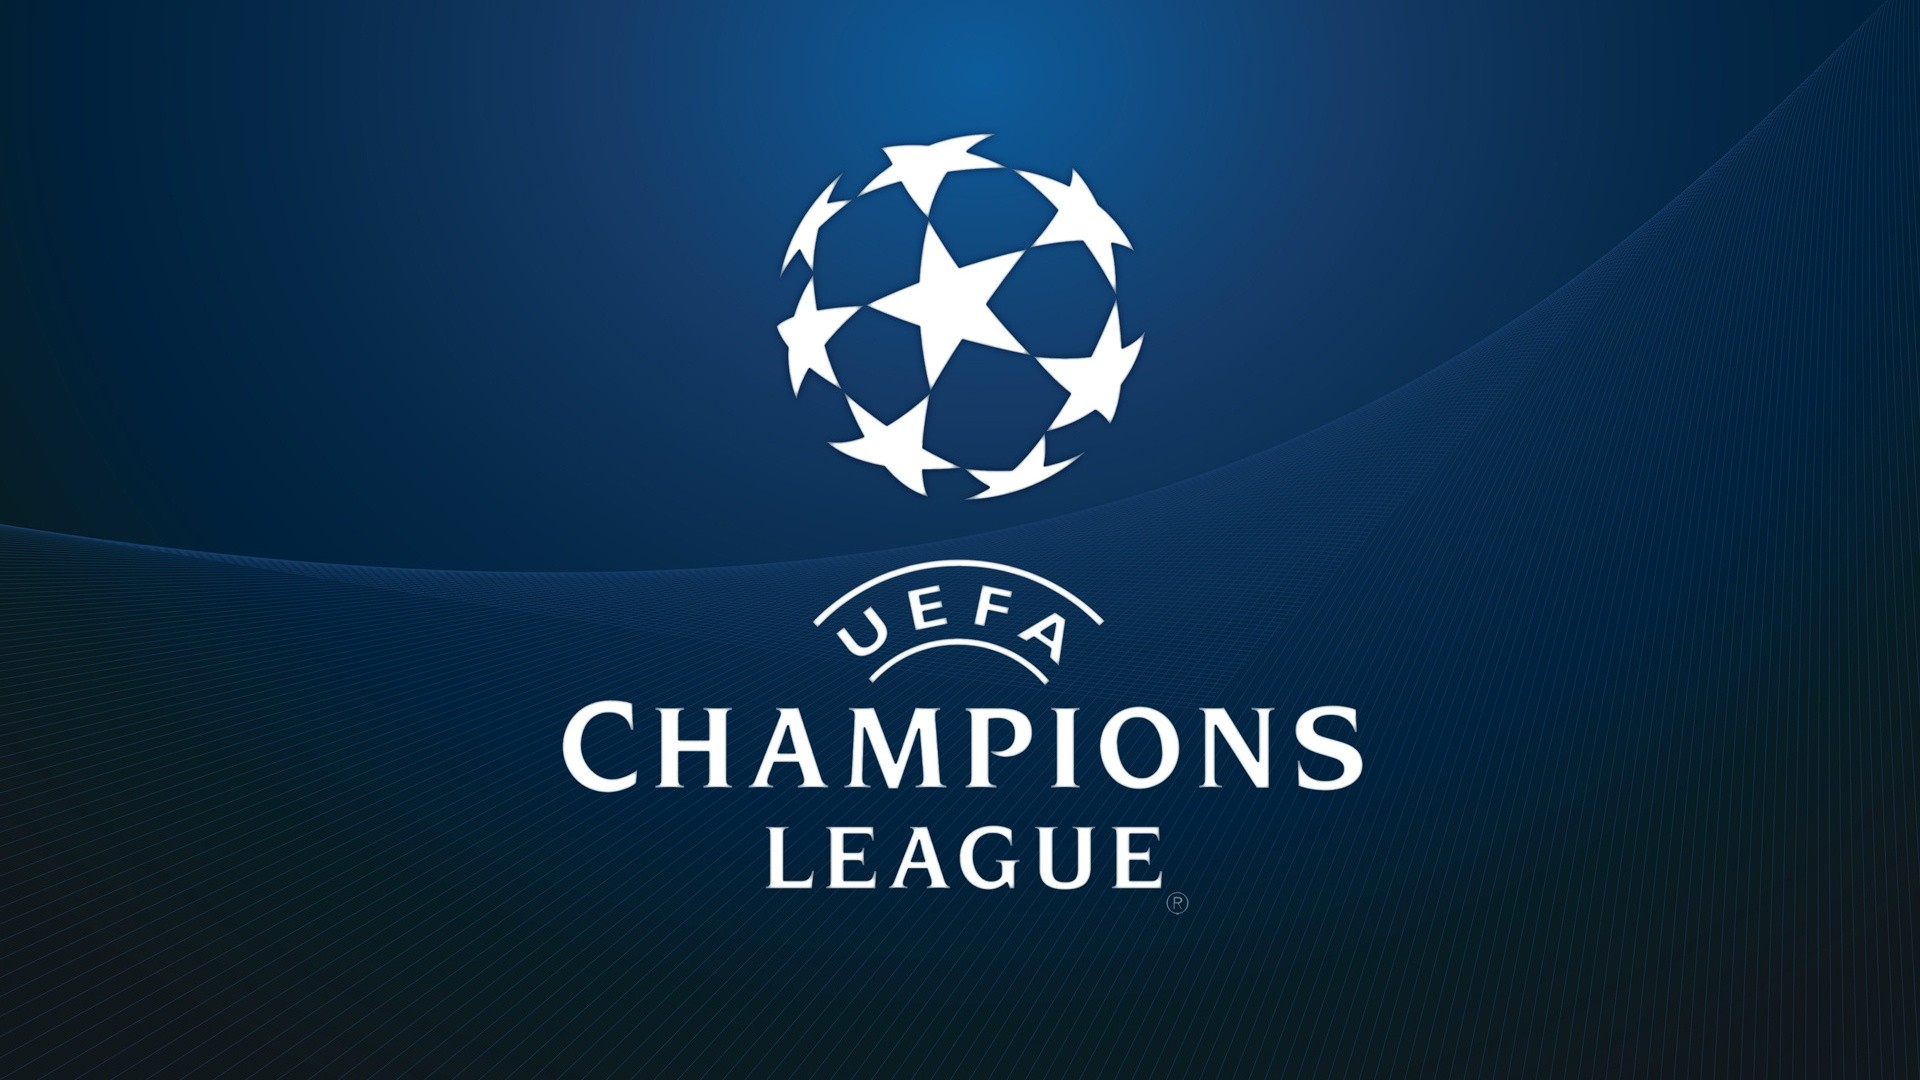 UEFA Champions League : Quarter Final Draw